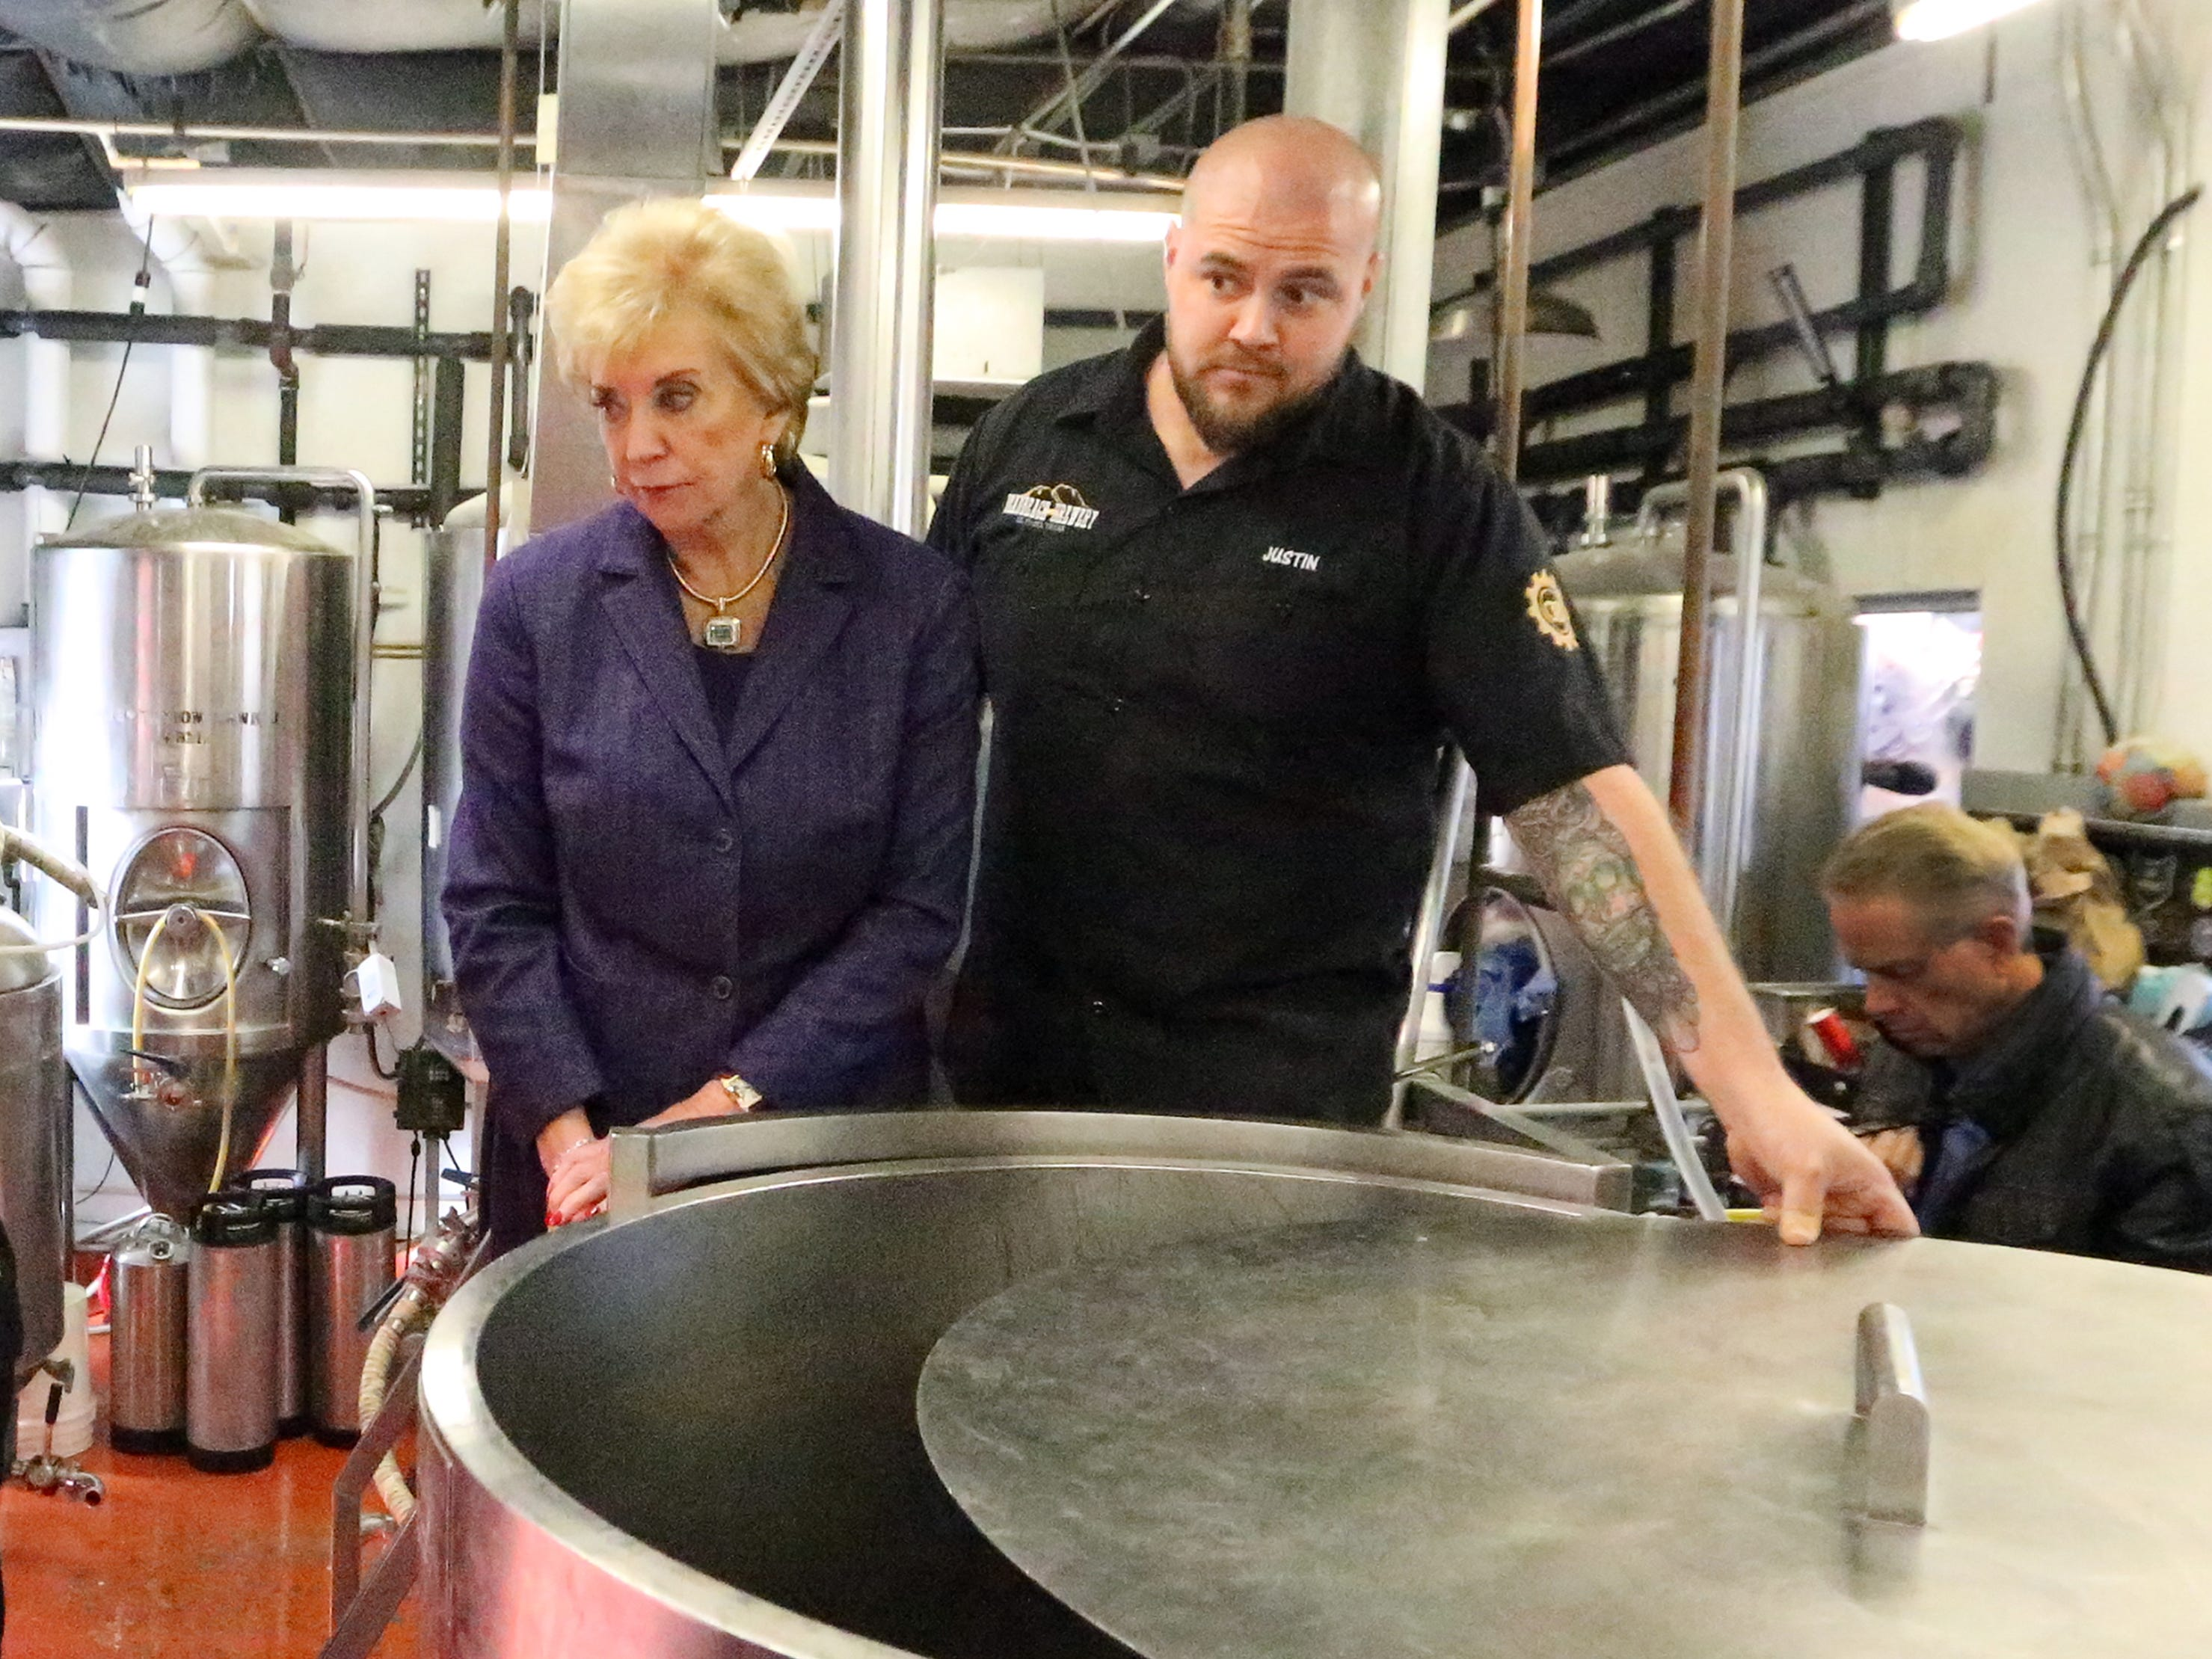 U.S. Small Business Administration director Linda McMahon, left, is shown a piece of beer making equipment by Justin Ordoñez, co-owner of DeadBeach Brewery at 406 Durango Street during a visit to El Paso Tuesday.